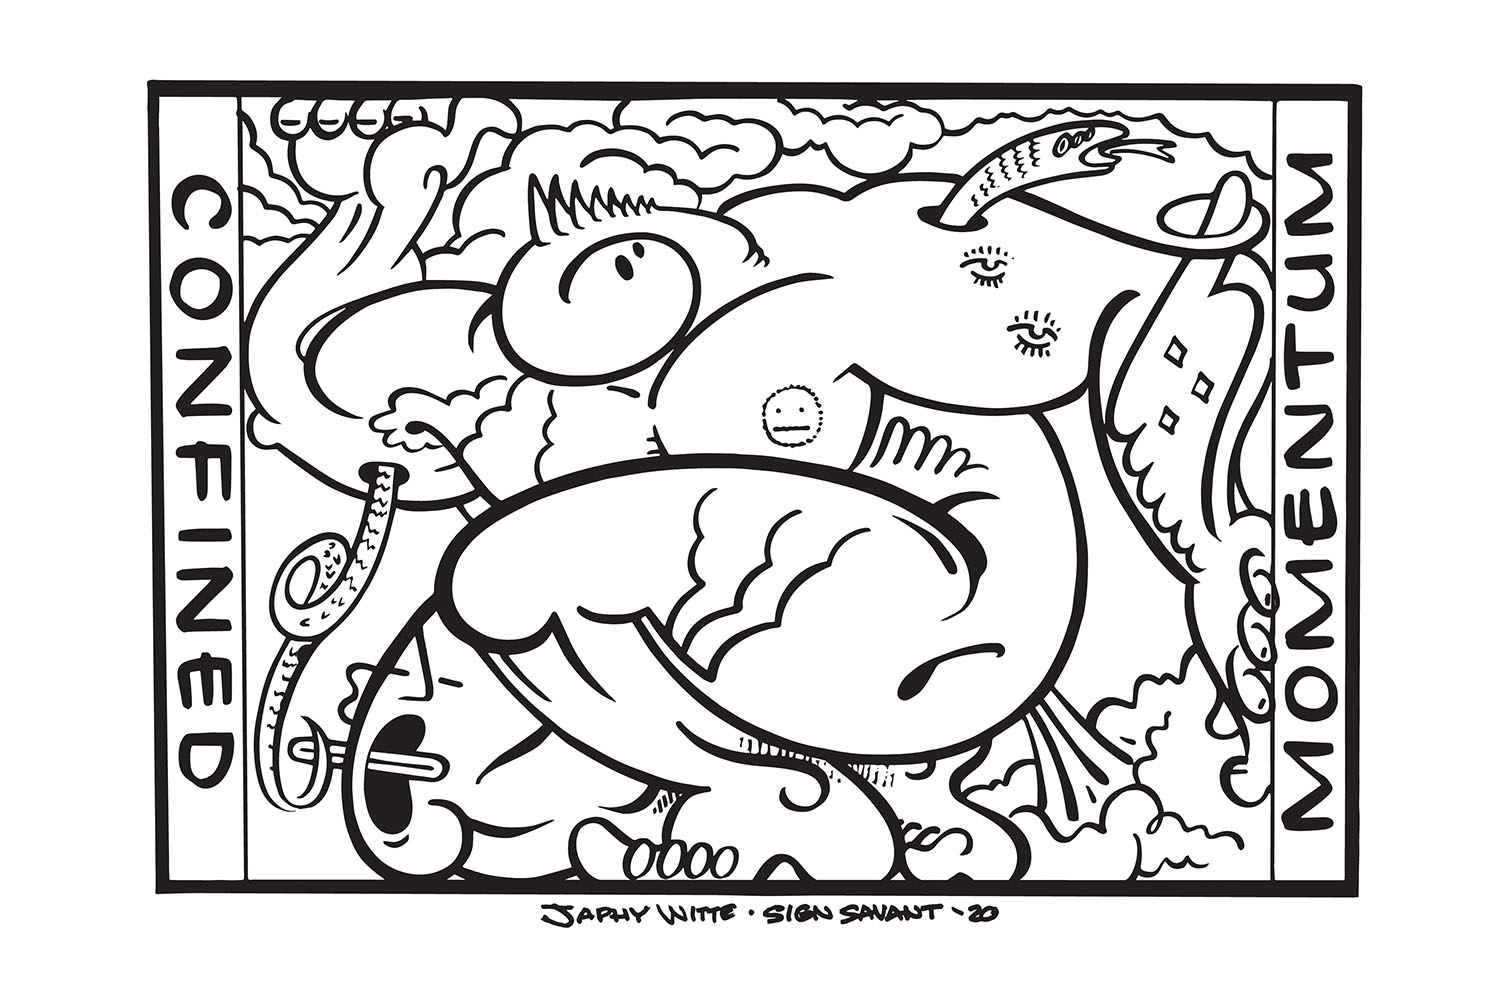 "Whether you're looking for something other than Netflix to do or something to keep your little ones entertained, what better way to pass the time than to color?! Artists in Seattle have created free coloring pages you can download and print right at home! You can not only get to know some local artists but also keep your mind engaged in a different way during quarantine. Pages can be downloaded from&nbsp;<a href=""https://stayinsidethelines.co/"" target=""_blank"">stayinsidethelines.co</a>. Make sure to tag&nbsp;<a href=""https://www.instagram.com/Stayinsidethelinesseattle/"" target=""_blank"">@StayInsideTheLinesSeattle&nbsp;</a>and use&nbsp;<a href=""https://www.instagram.com/explore/tags/stayinsidethelinessea/"" target=""_blank"">#STAYINSIDETheLinesSEA&nbsp;</a>when posting to social media! (Image:&nbsp;@SignSavant)"